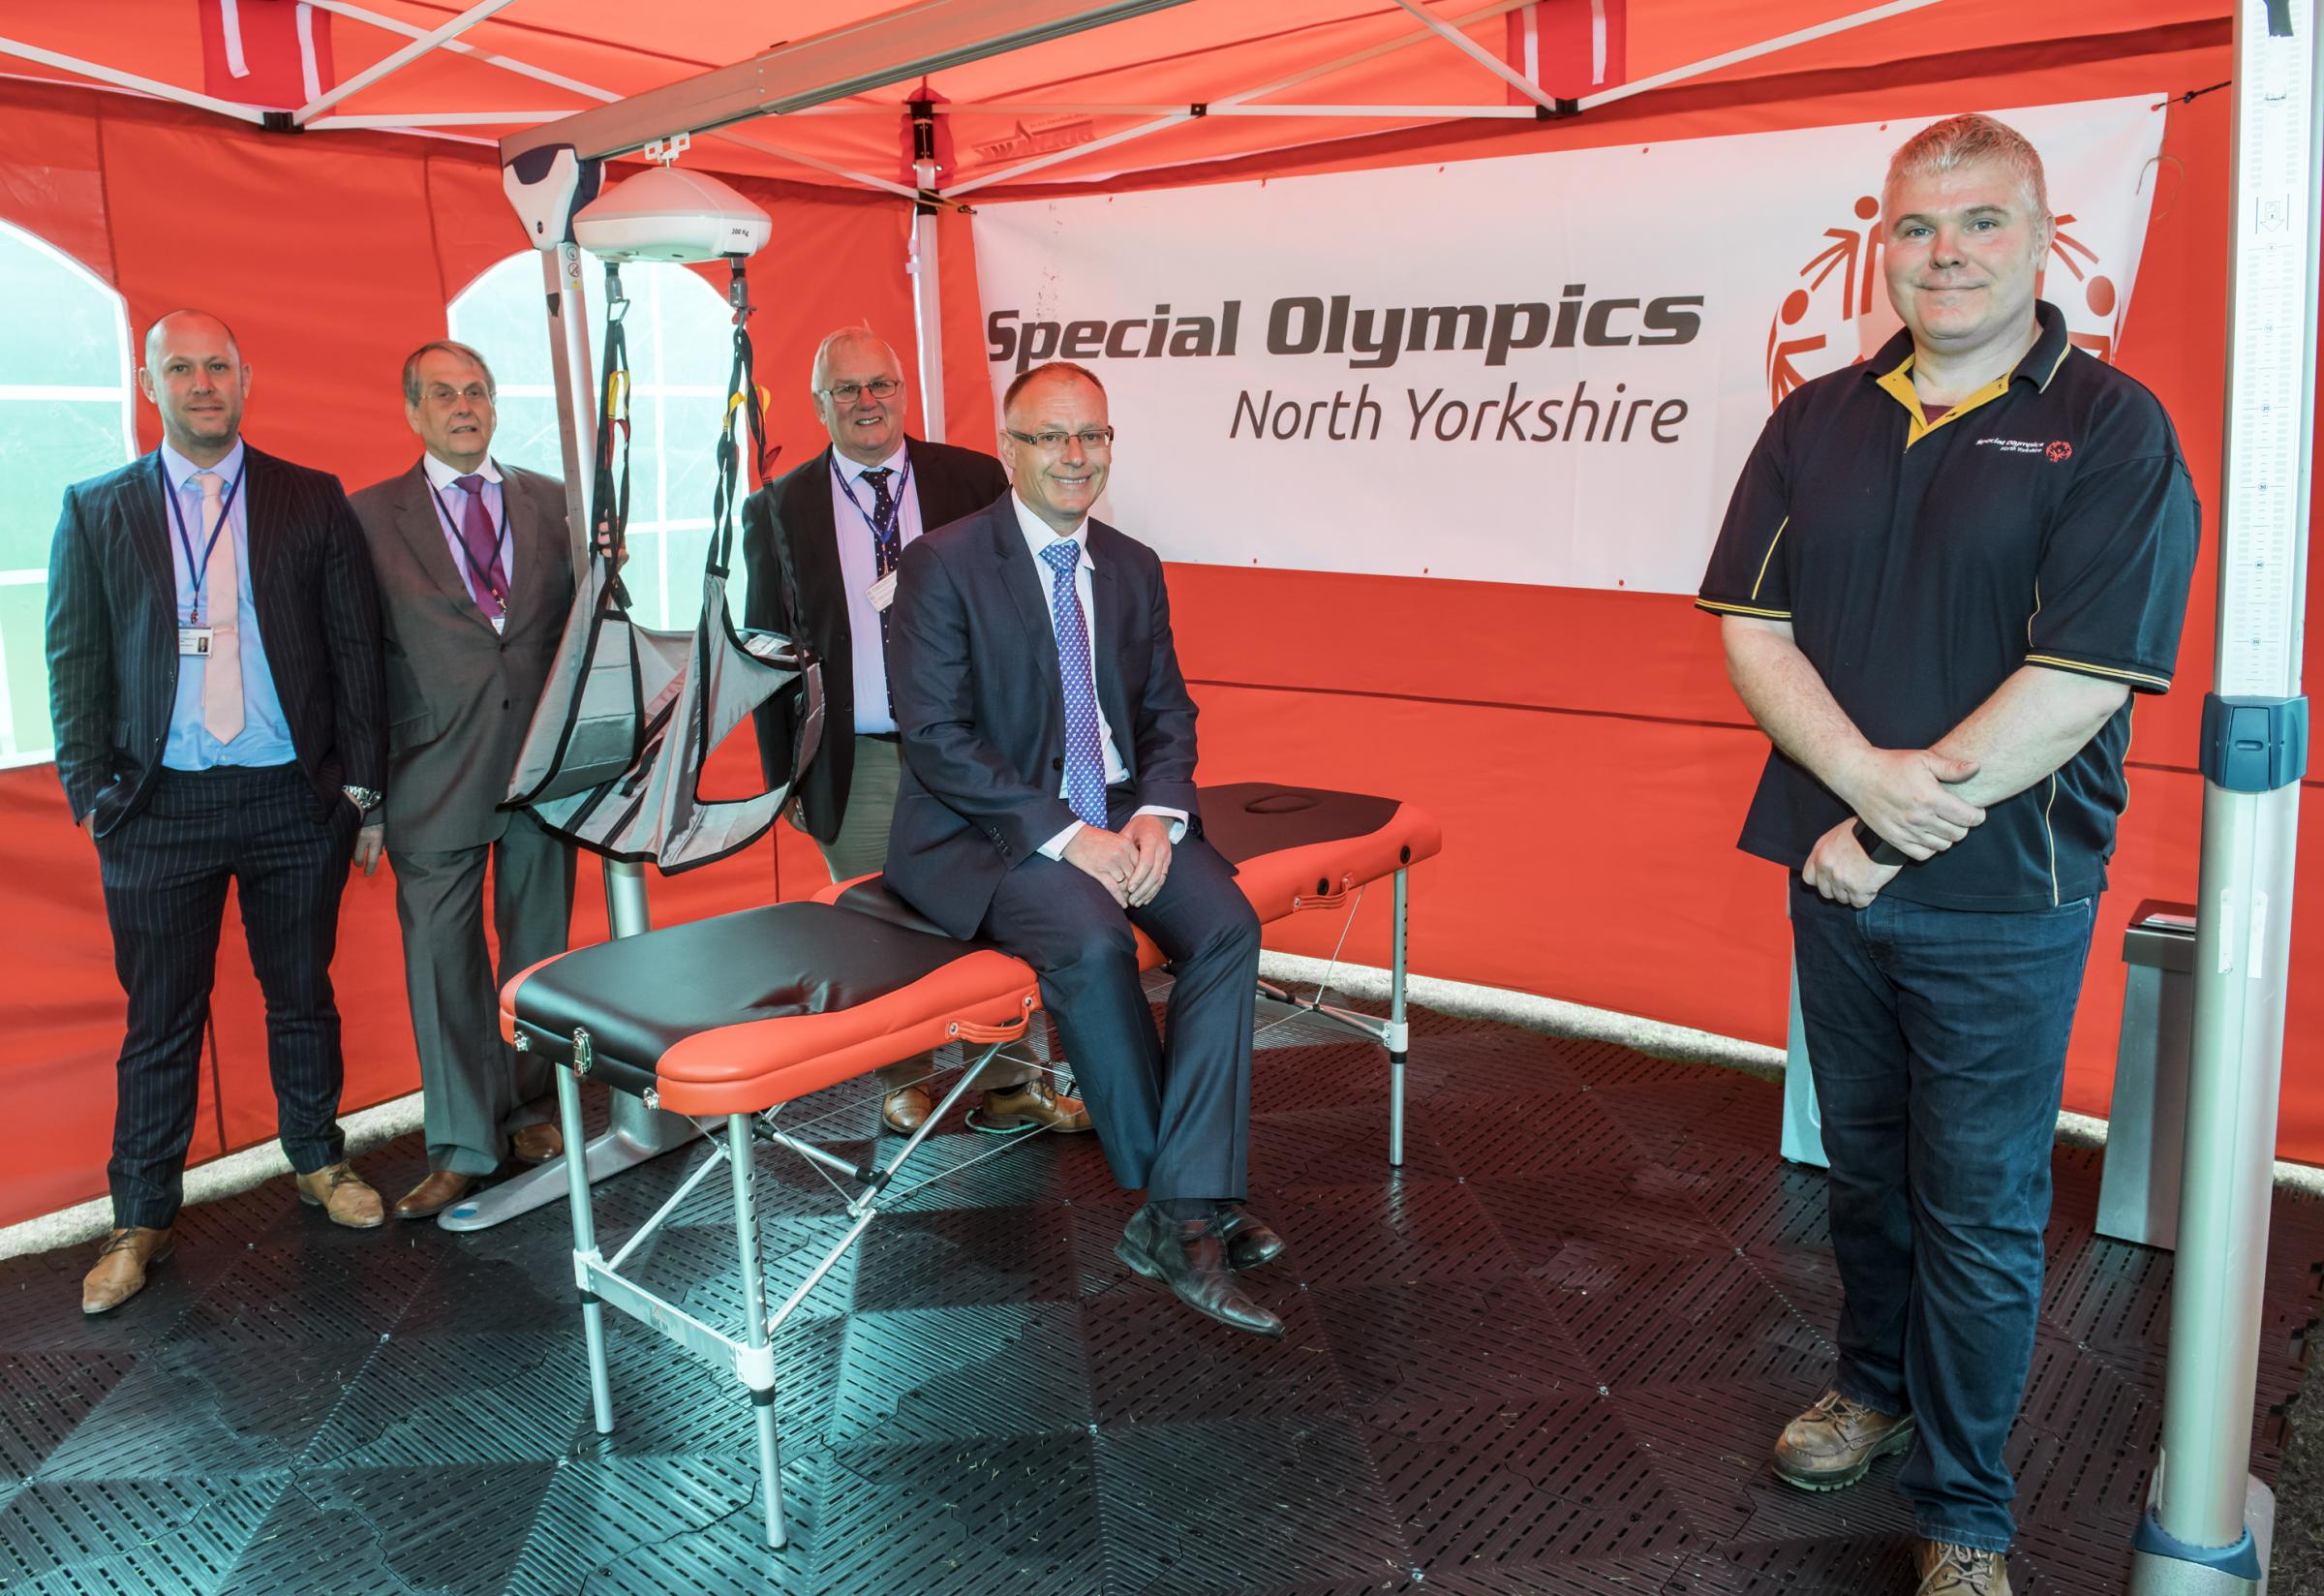 CHANGING: county councillors Callum Walsh, David Chance, Executive Member for Stronger Communities, Bob Baker and Gareth Dadd, Member for Thirsk and Deputy Leader, with Andrew Newton, chairman of Special Olympics North Yorkshire